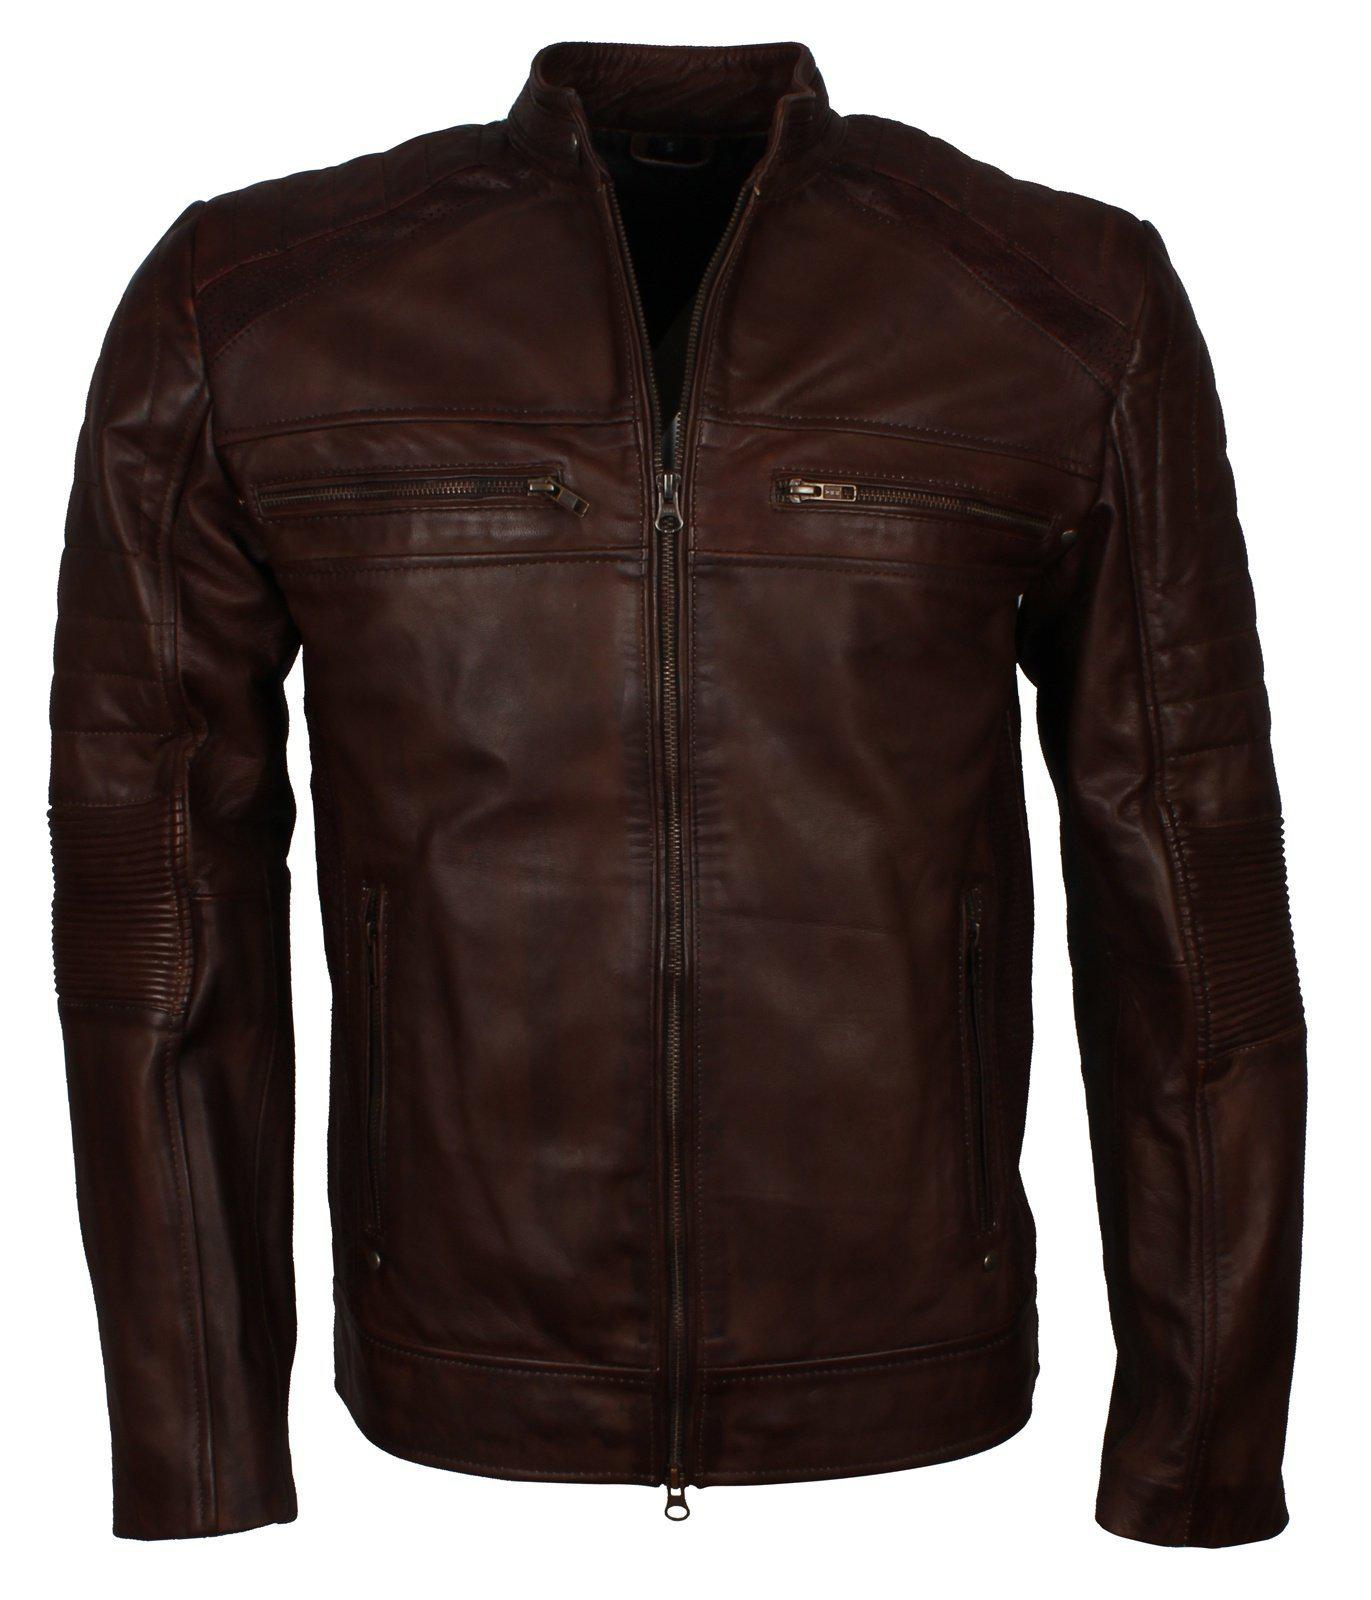 Leather Gift items for Motorcycle Rider Lovers